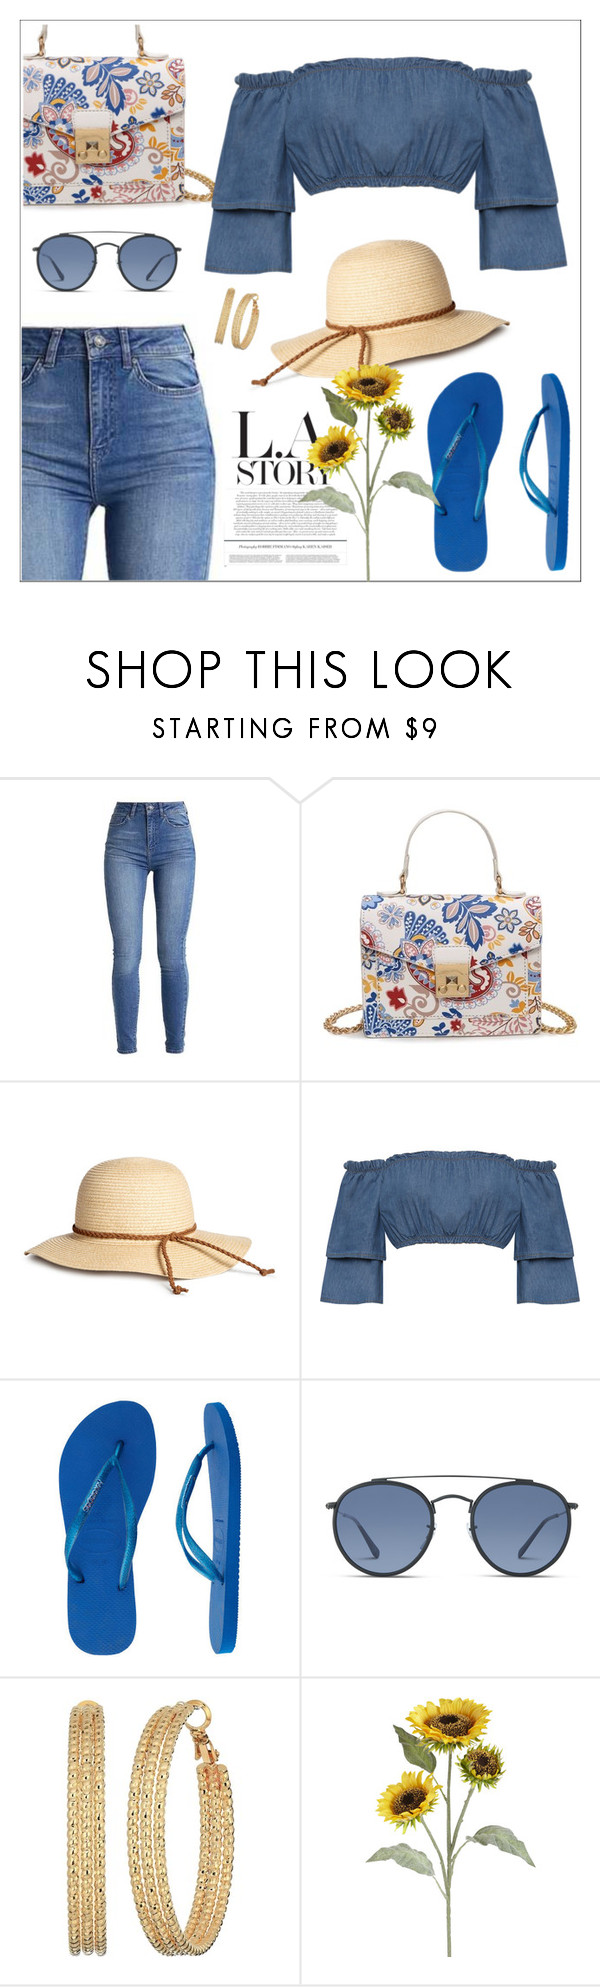 """""""L.A Story"""" by biange ❤ liked on Polyvore featuring WearAll, Havaianas, Ray-Ban, GUESS and Pier 1 Imports"""